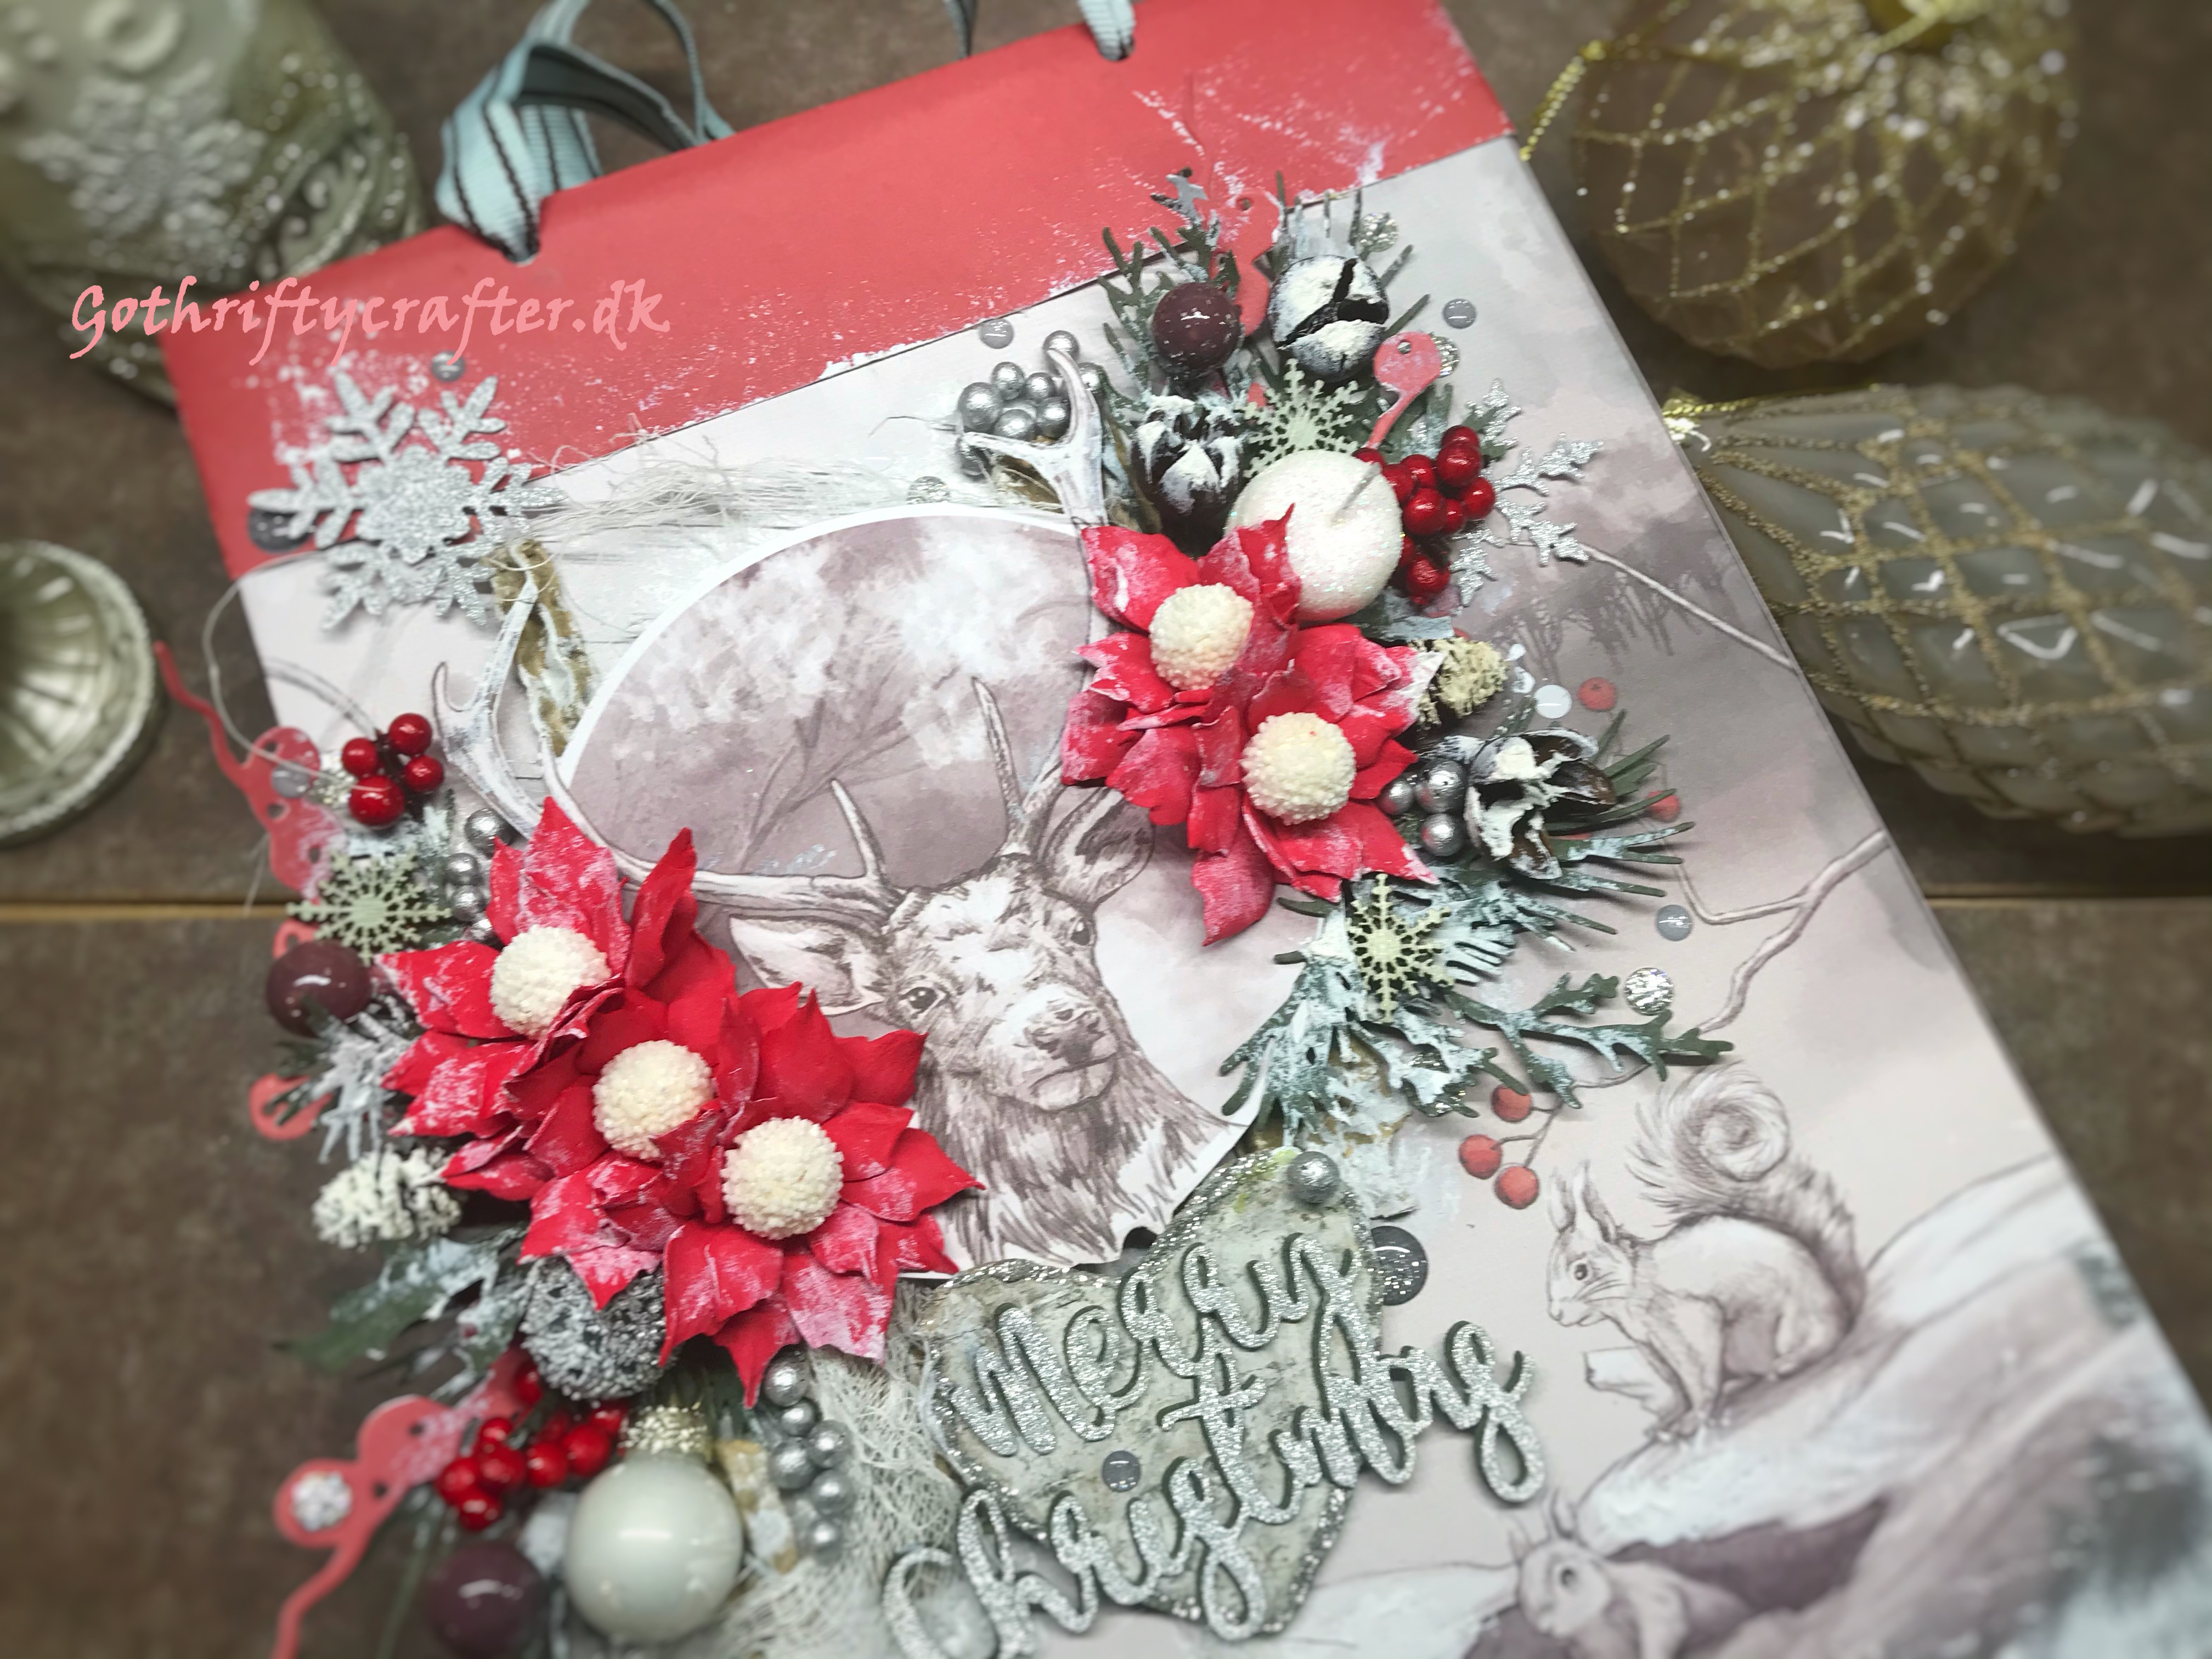 GoThriftycrafter Fabrika Decoru mixed media xmas winter snow gift bagjpg